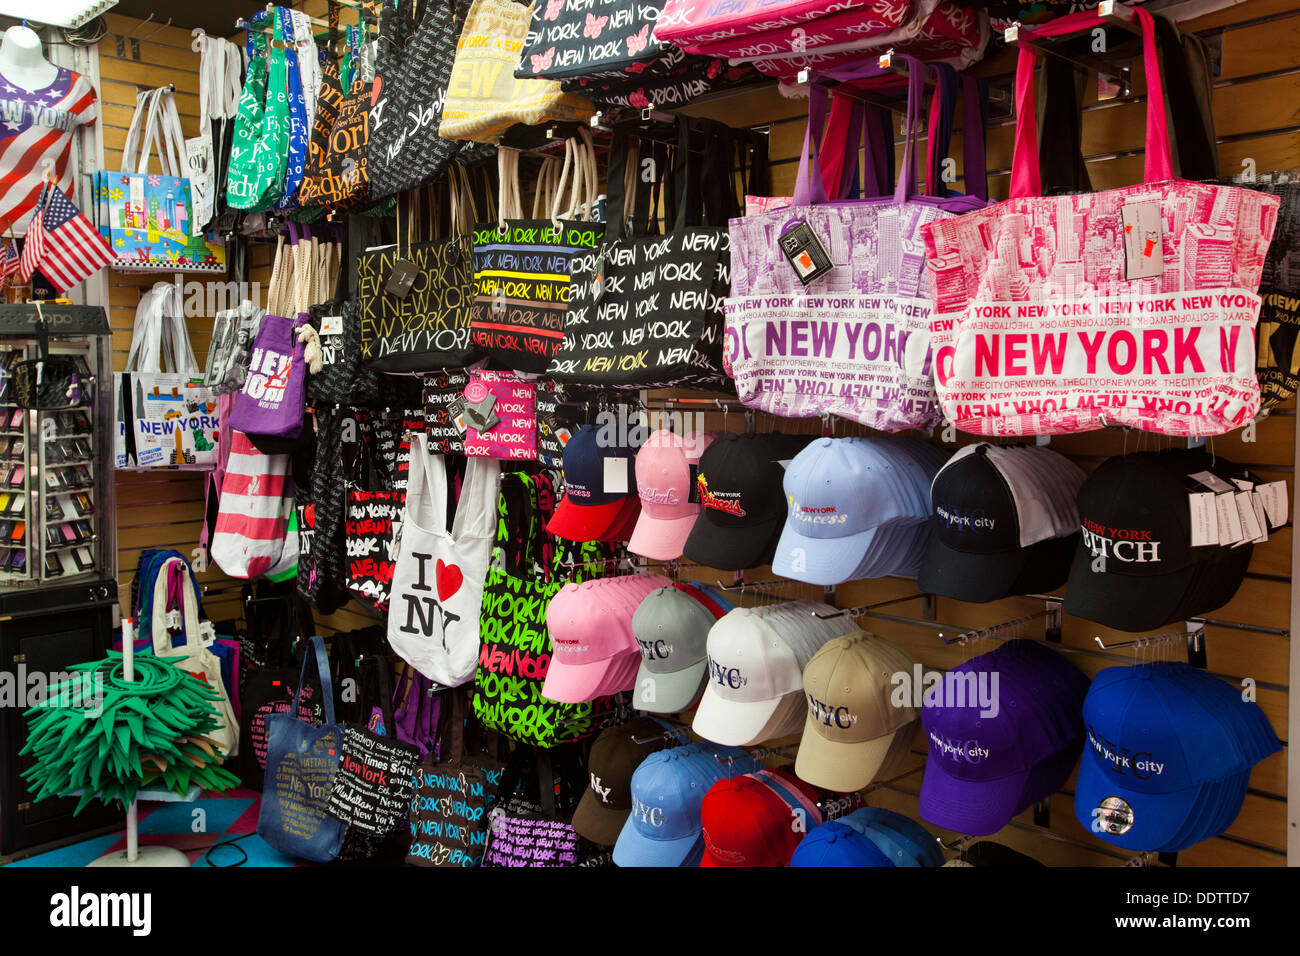 Shop America gift shop, manhattan, new york, united states of america stock